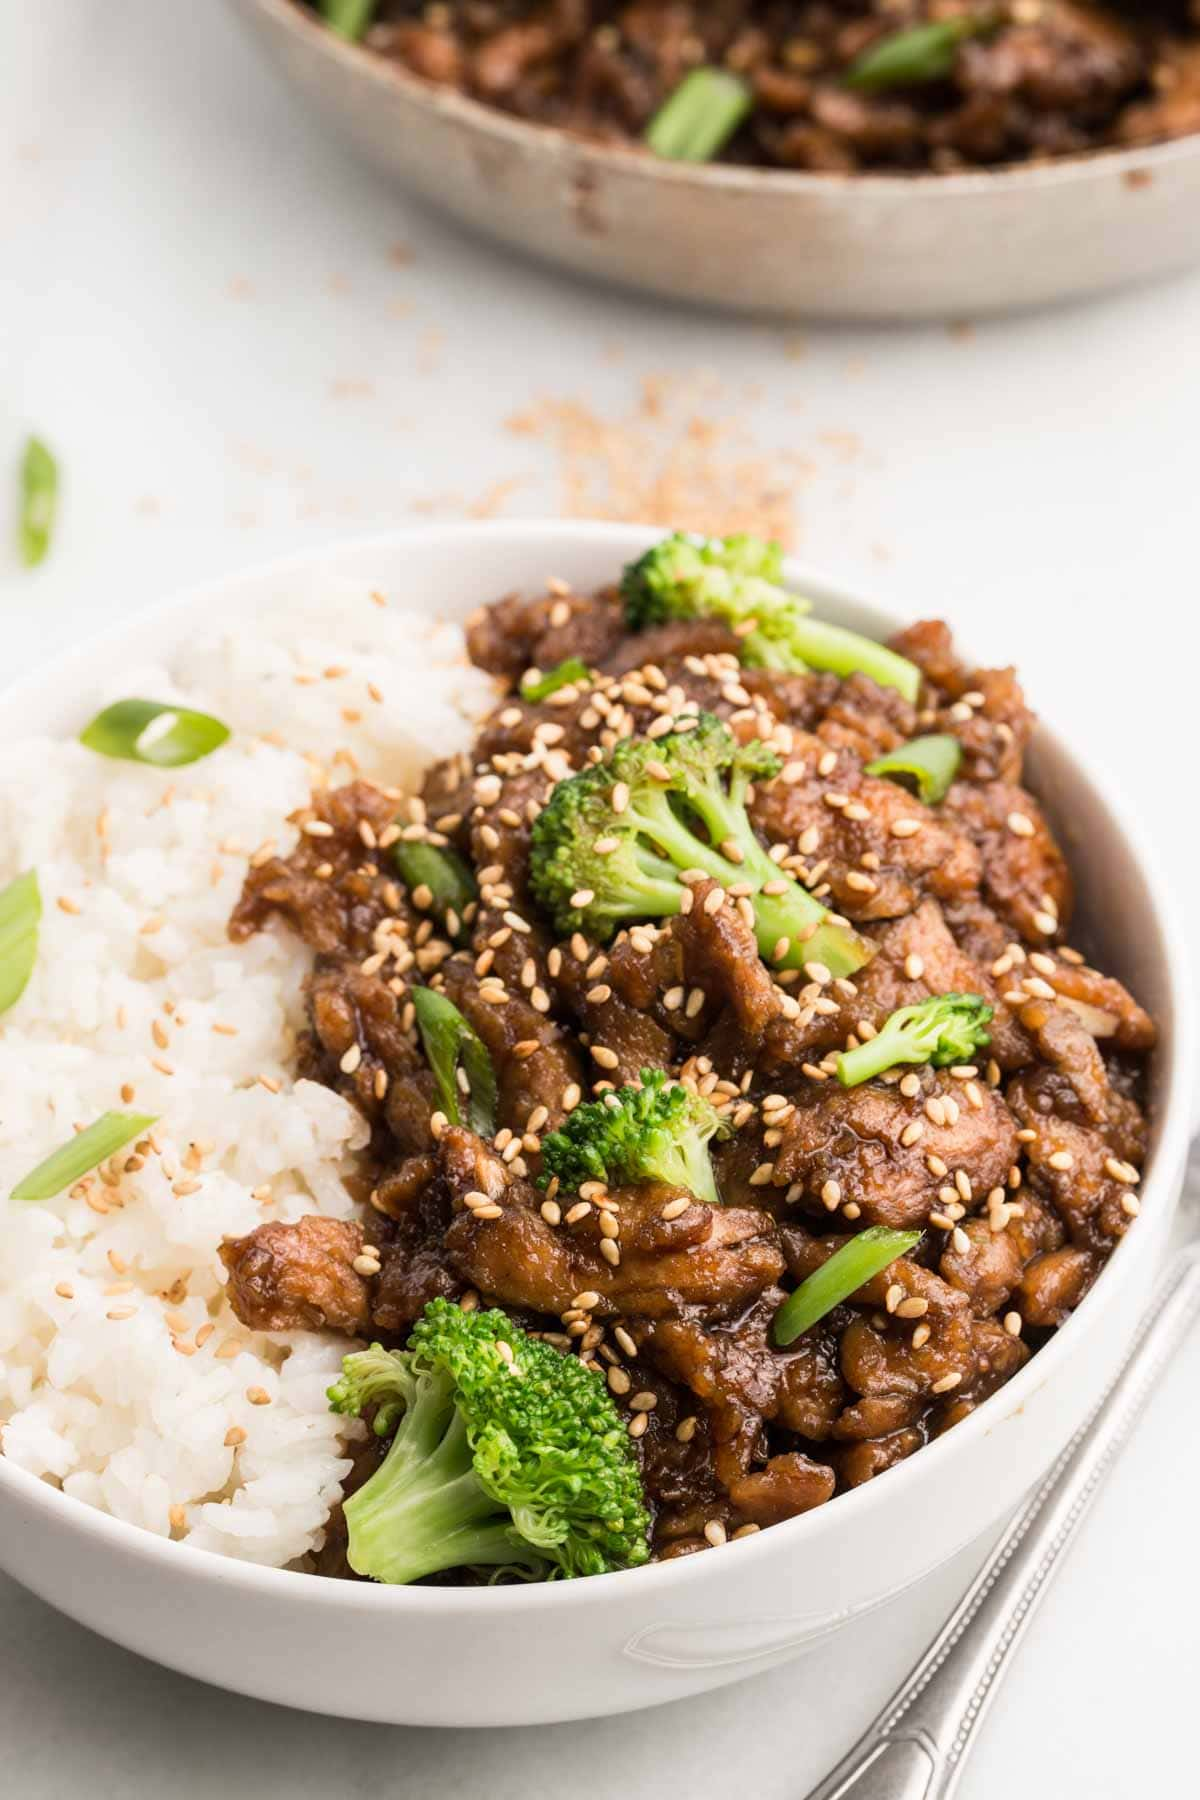 Vegan beef and broccoli with white rice in white bowl with white background